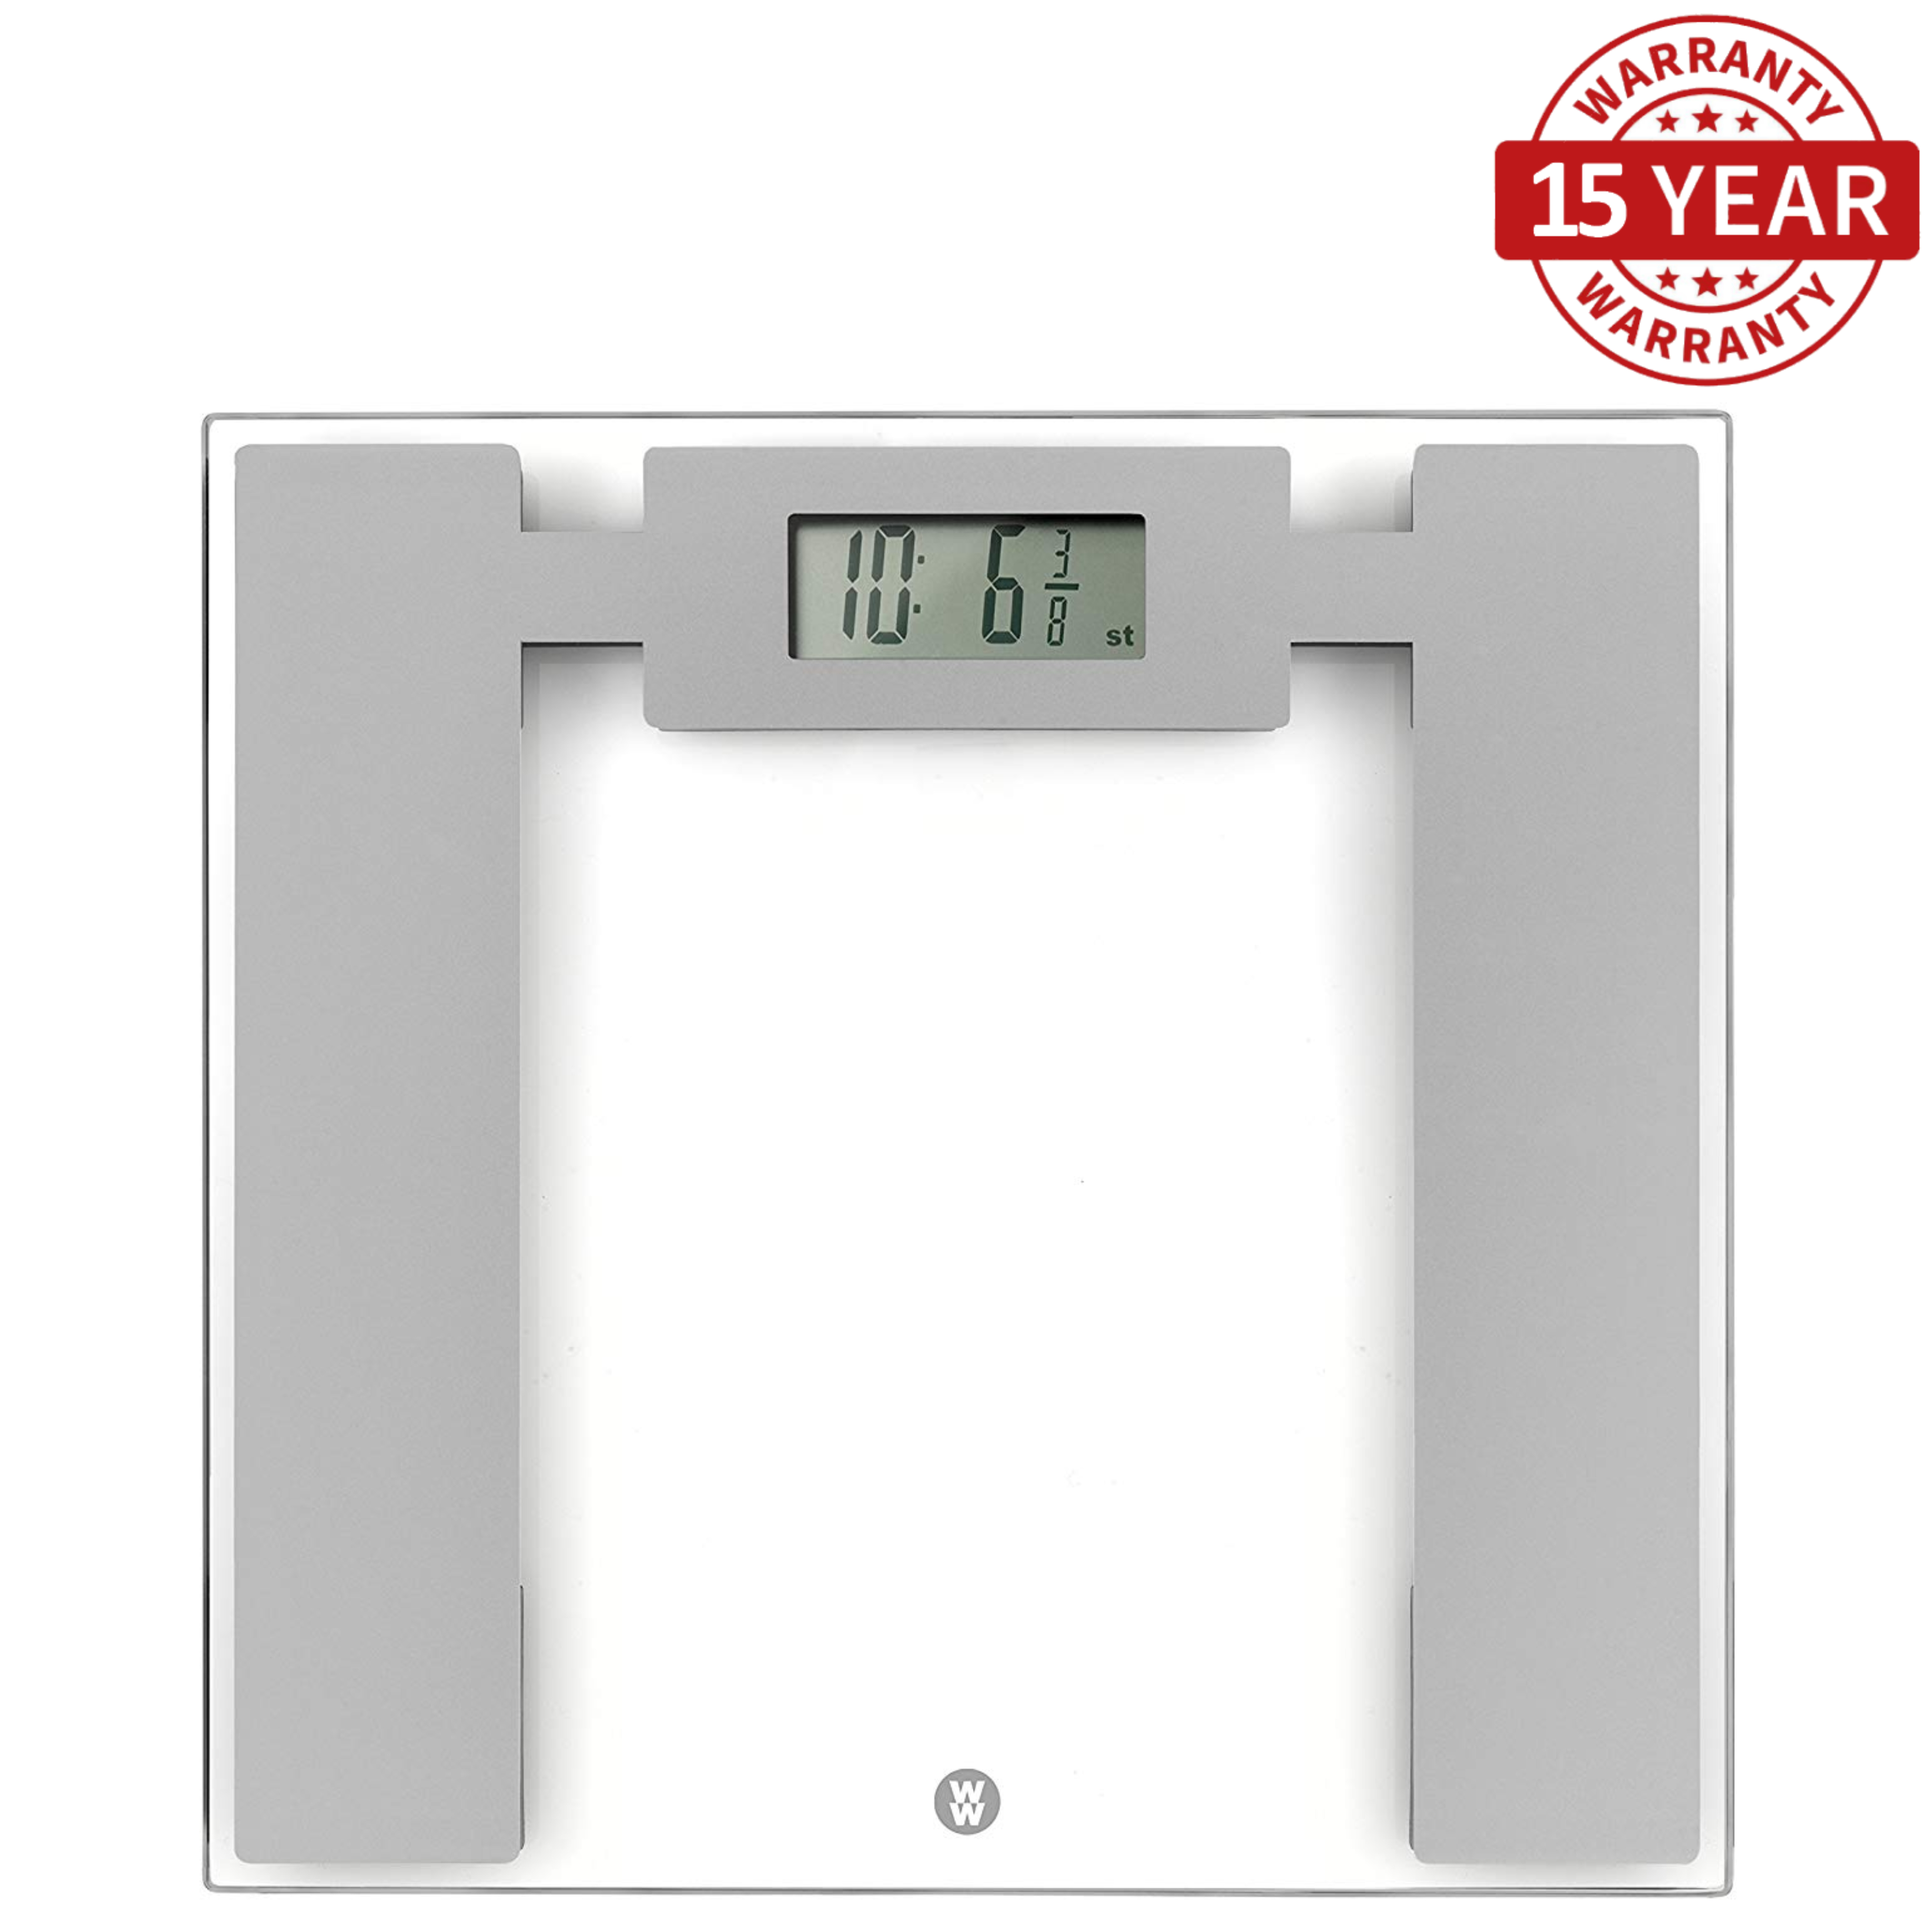 Weight Watchers 8950NU Ultra Slim Glass Electronic Scales | Measures Body Weight